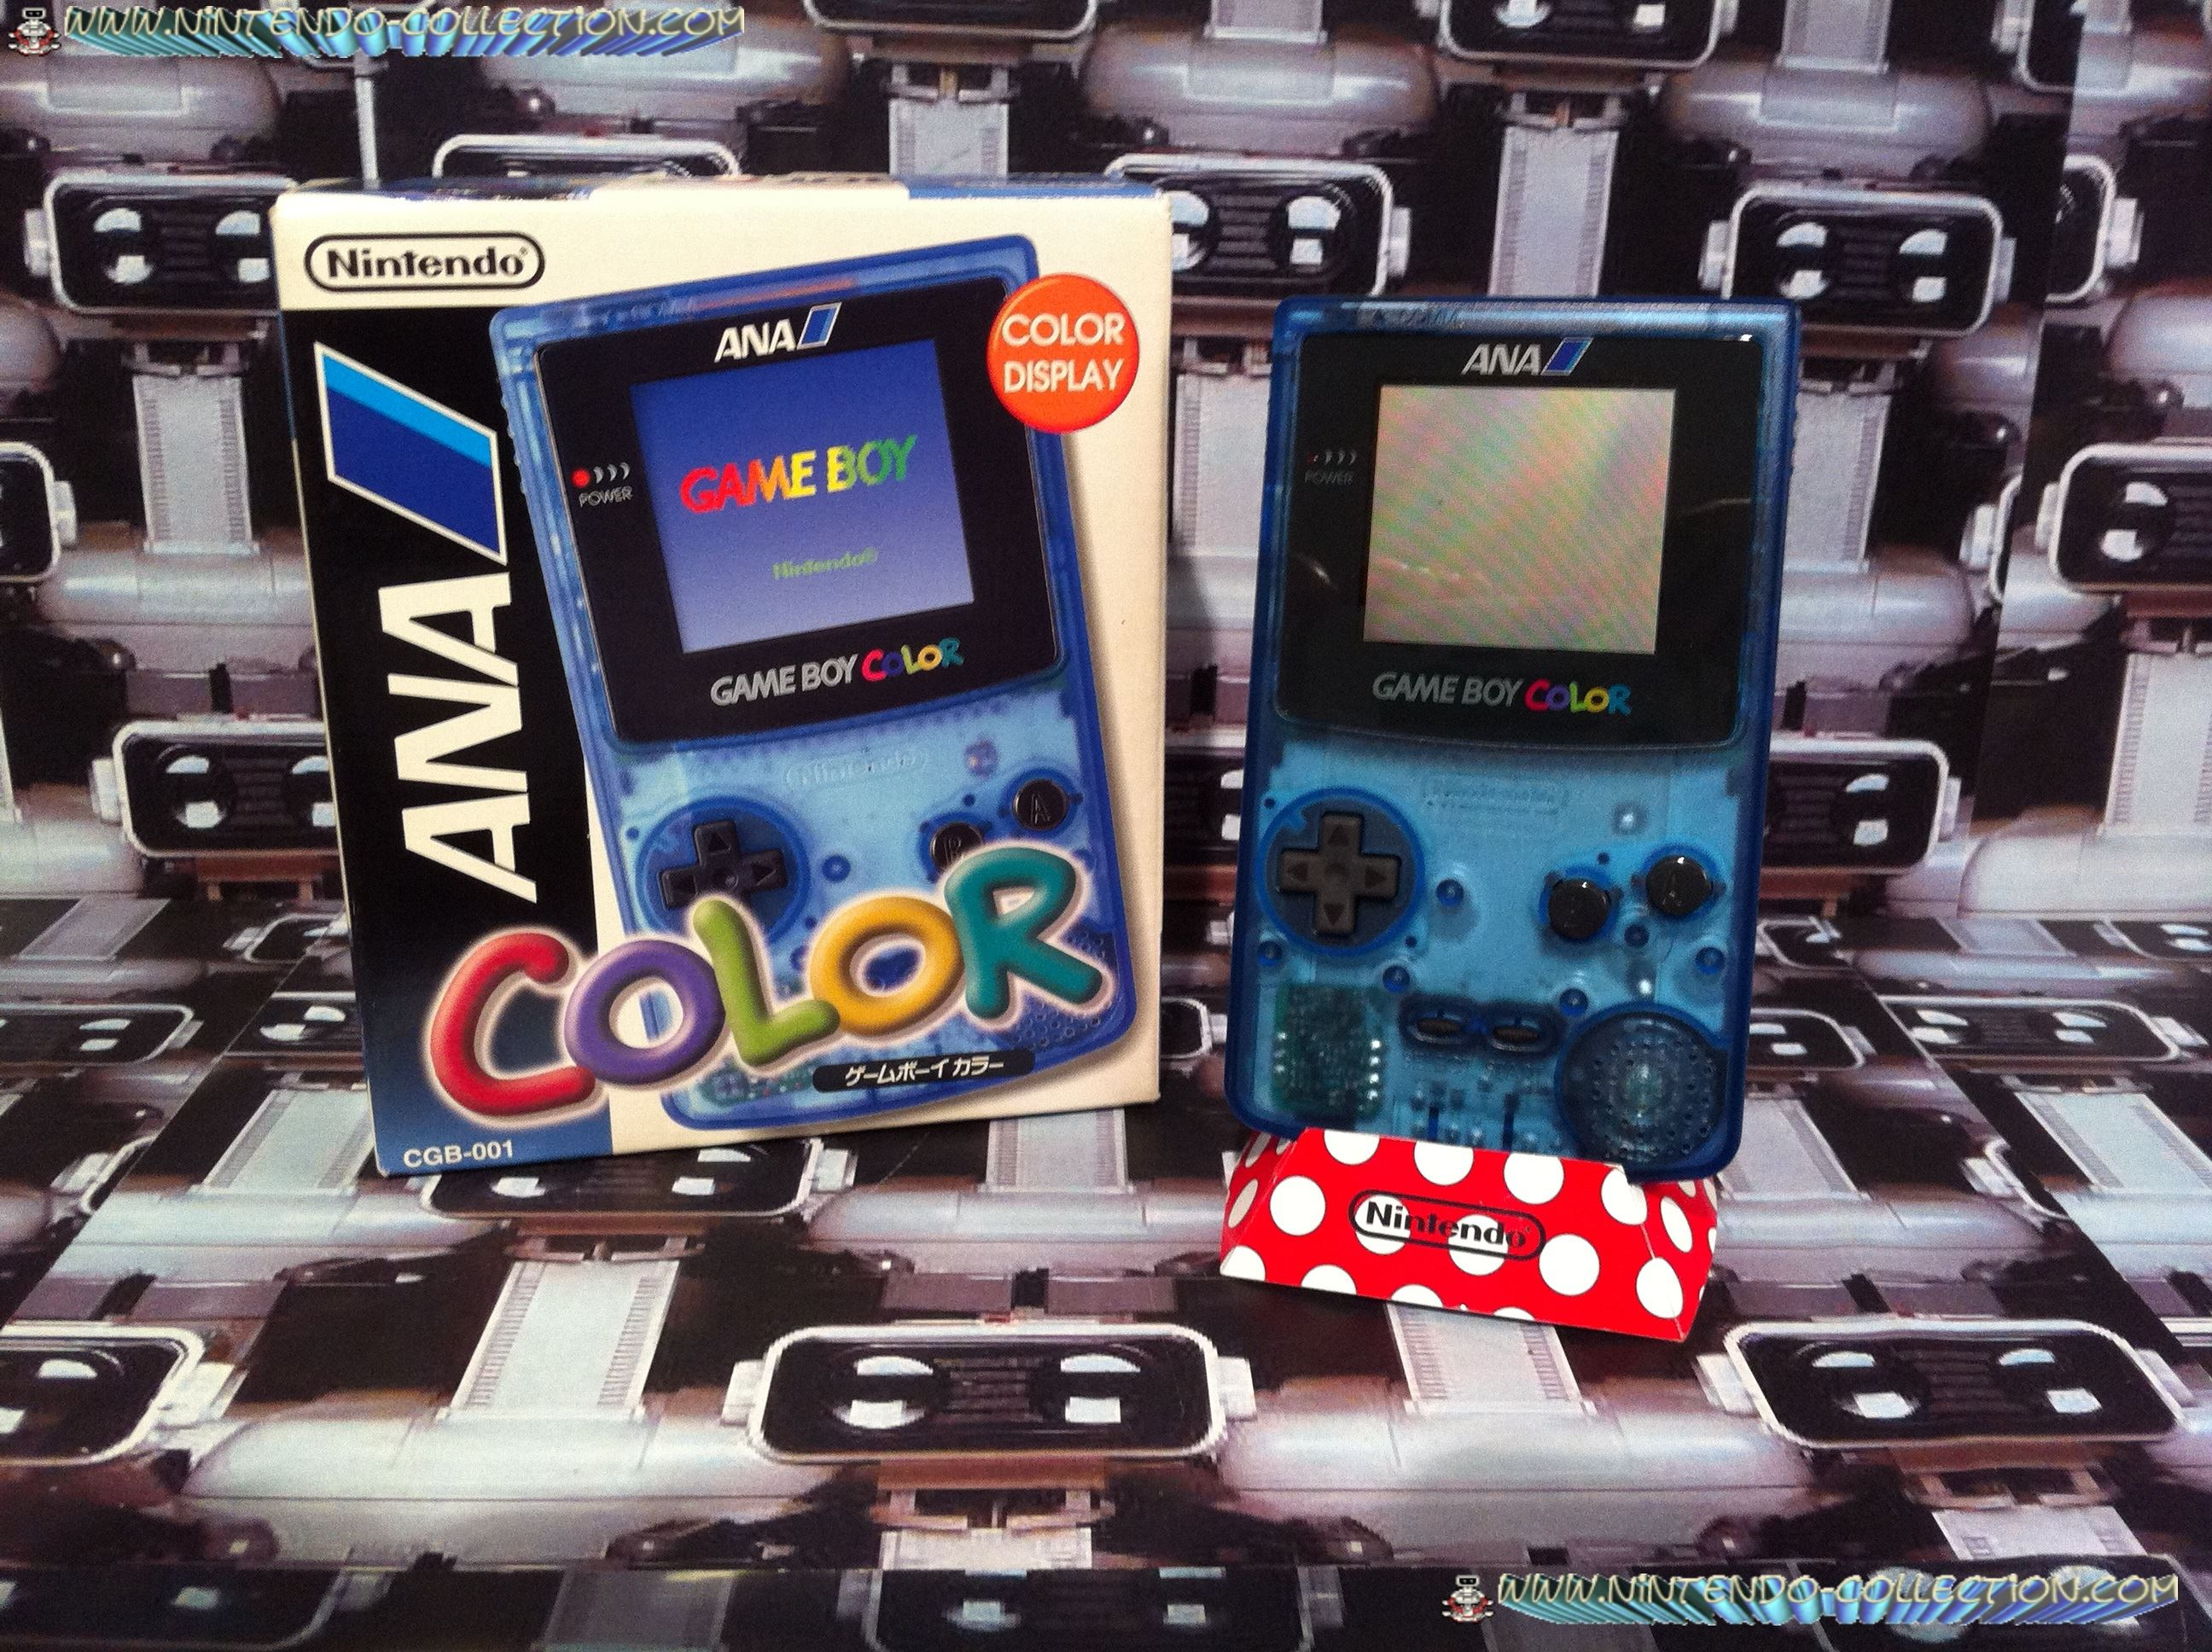 www.nintendo-collection.com - Gameboy Color ANA edition Japan - All Nippon Airways